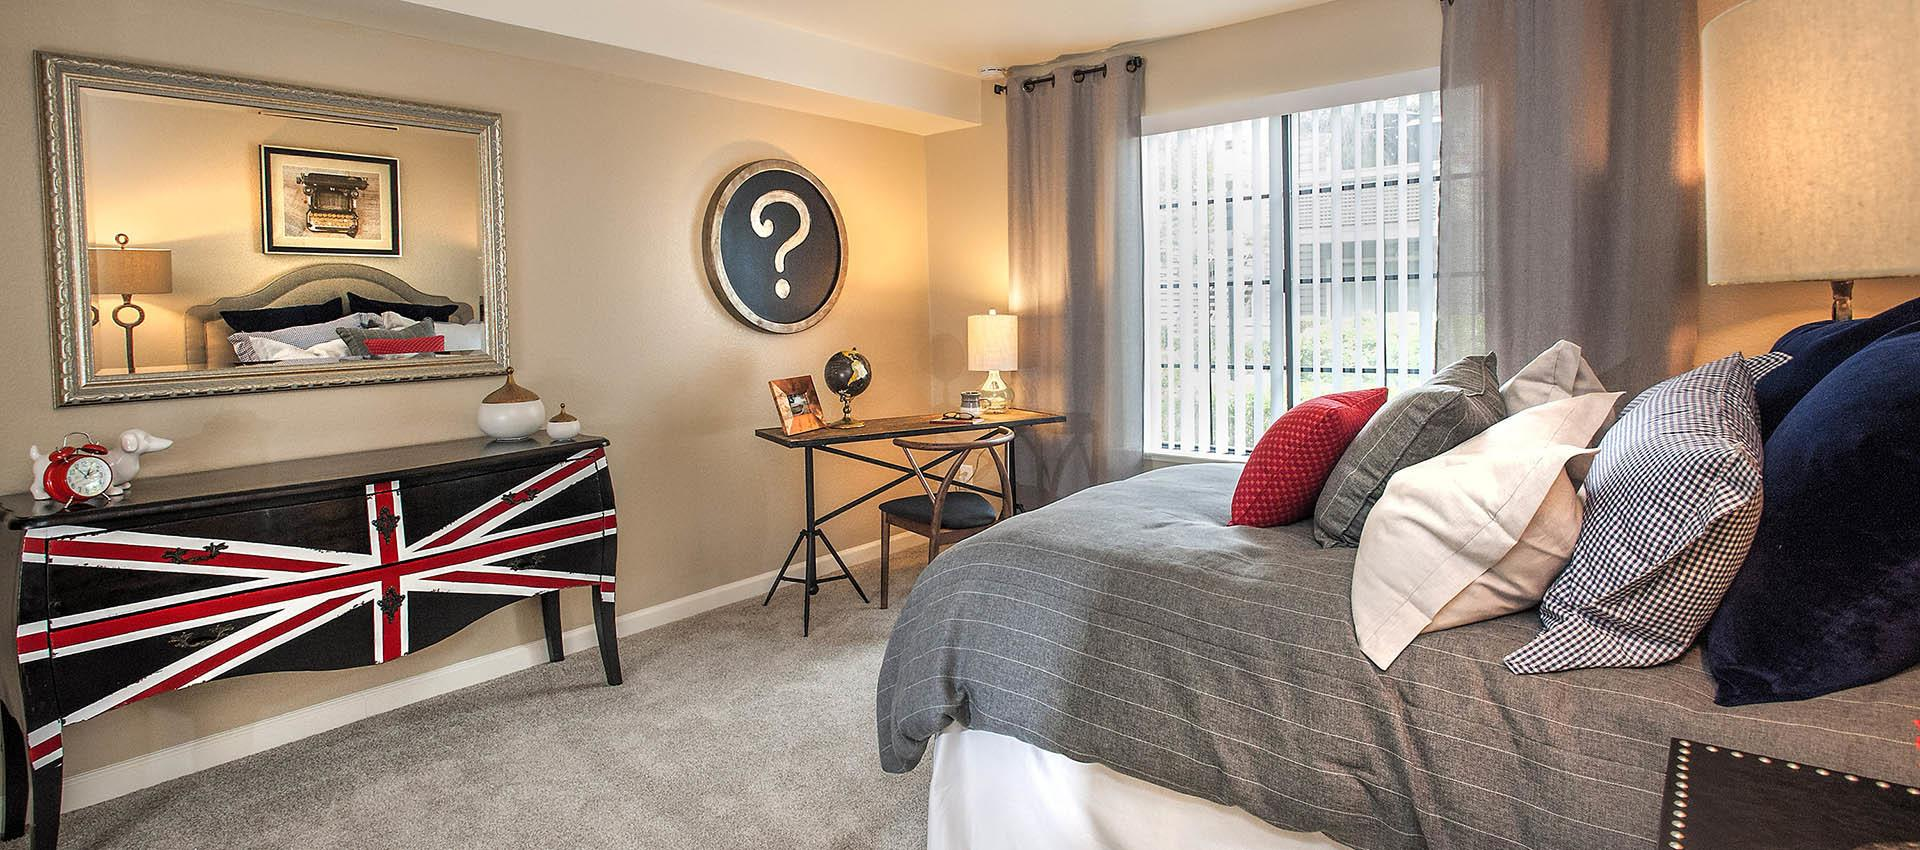 Spacious Master Bedroom With Modern Decorations at Hidden Lake Condominium Rentals in Sacramento, CA